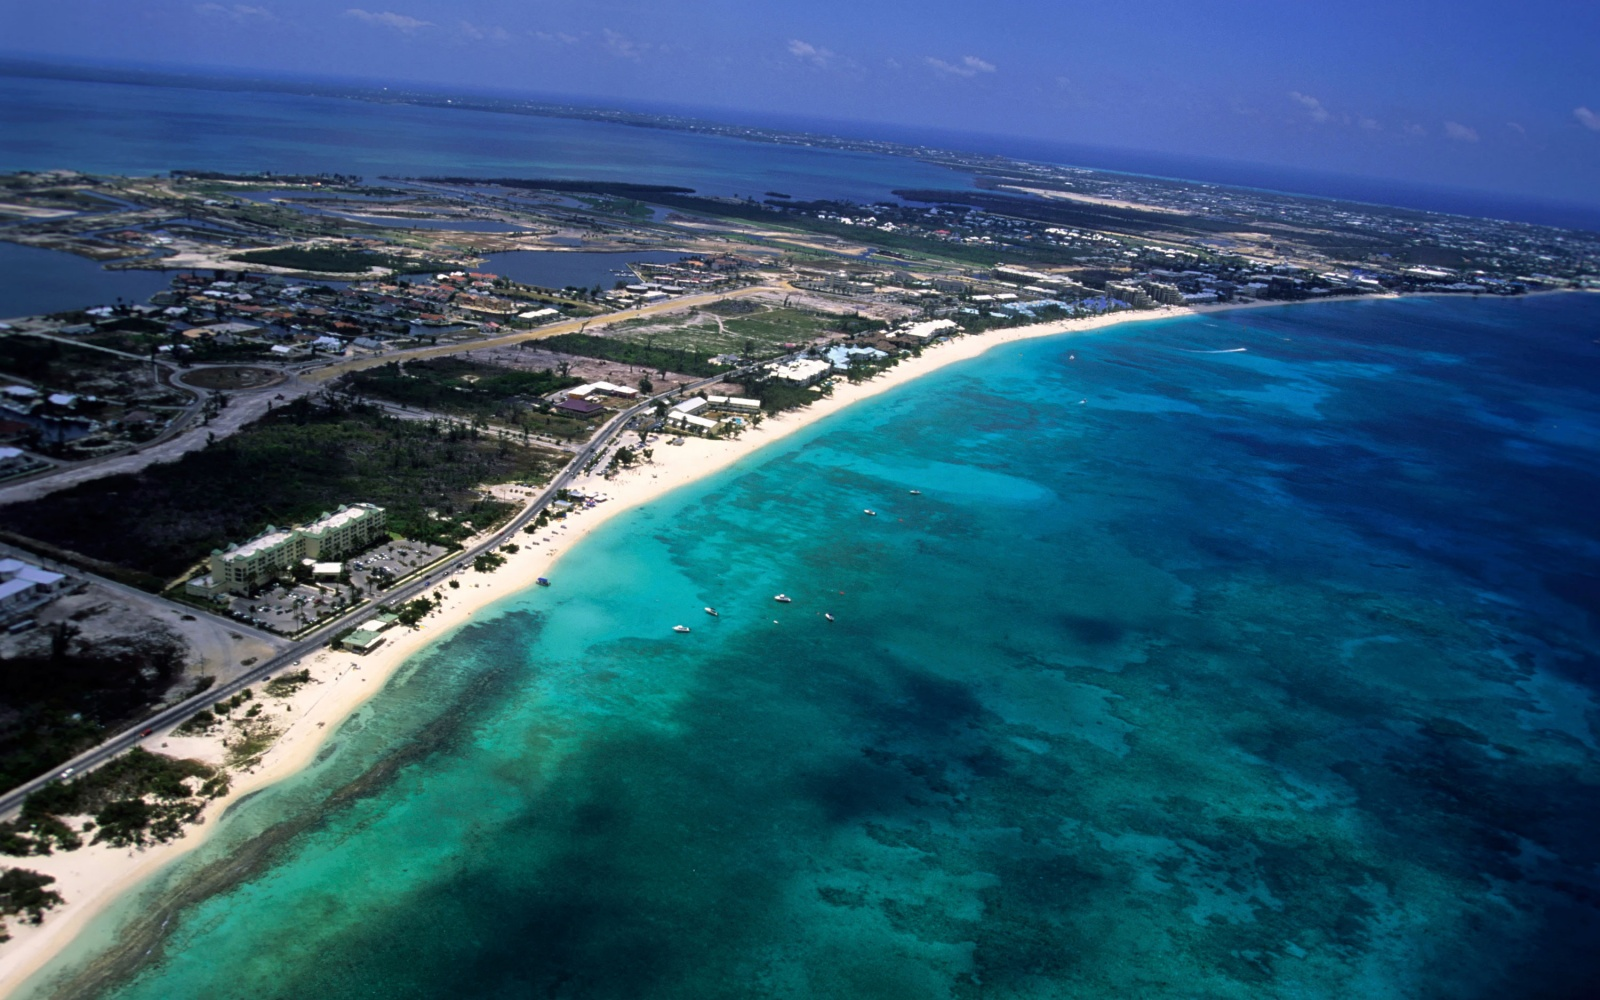 grand cayman aerial photo